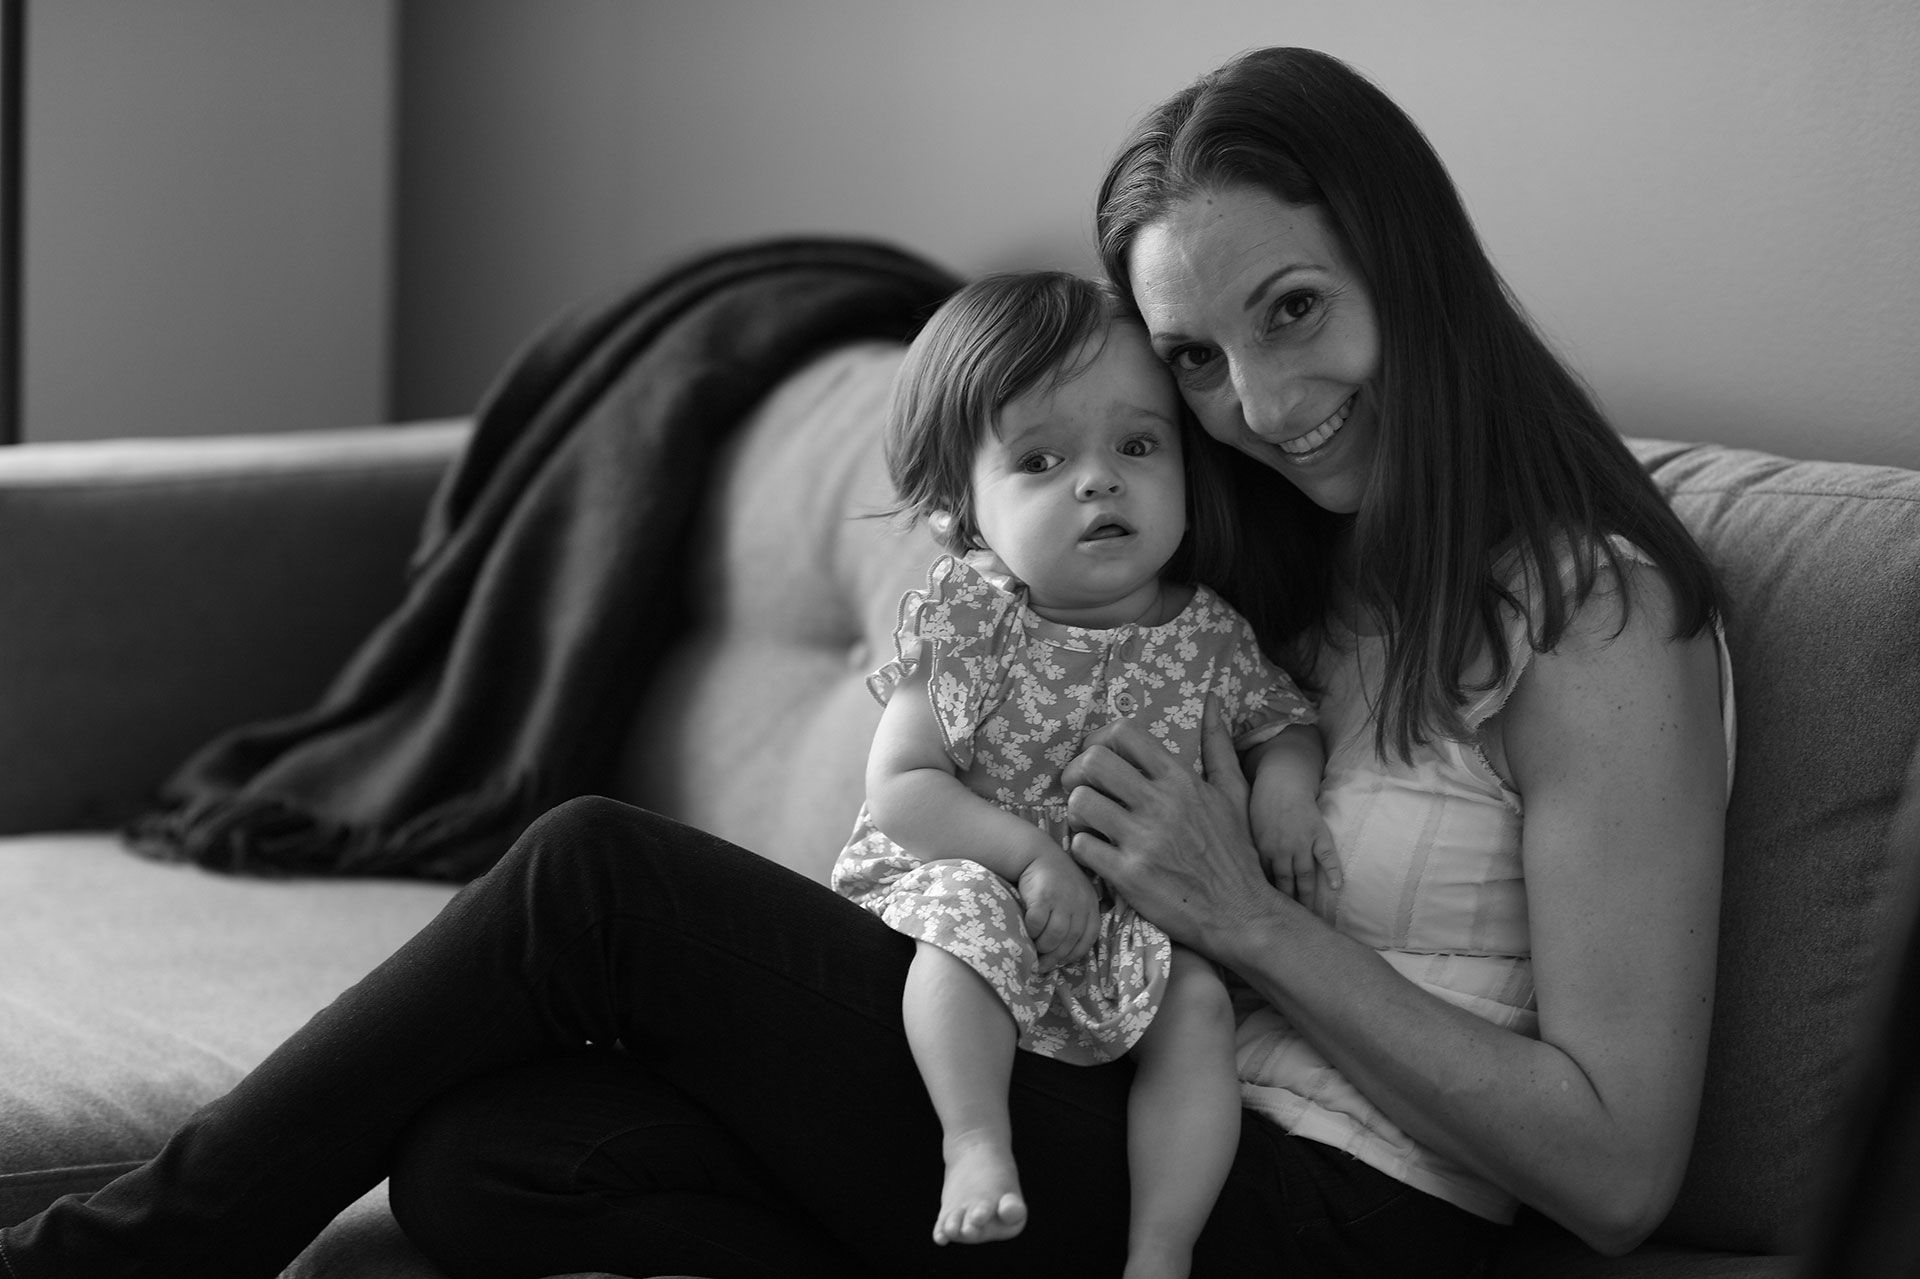 Black and white photo of mother holding infant daughter with Canavan disease